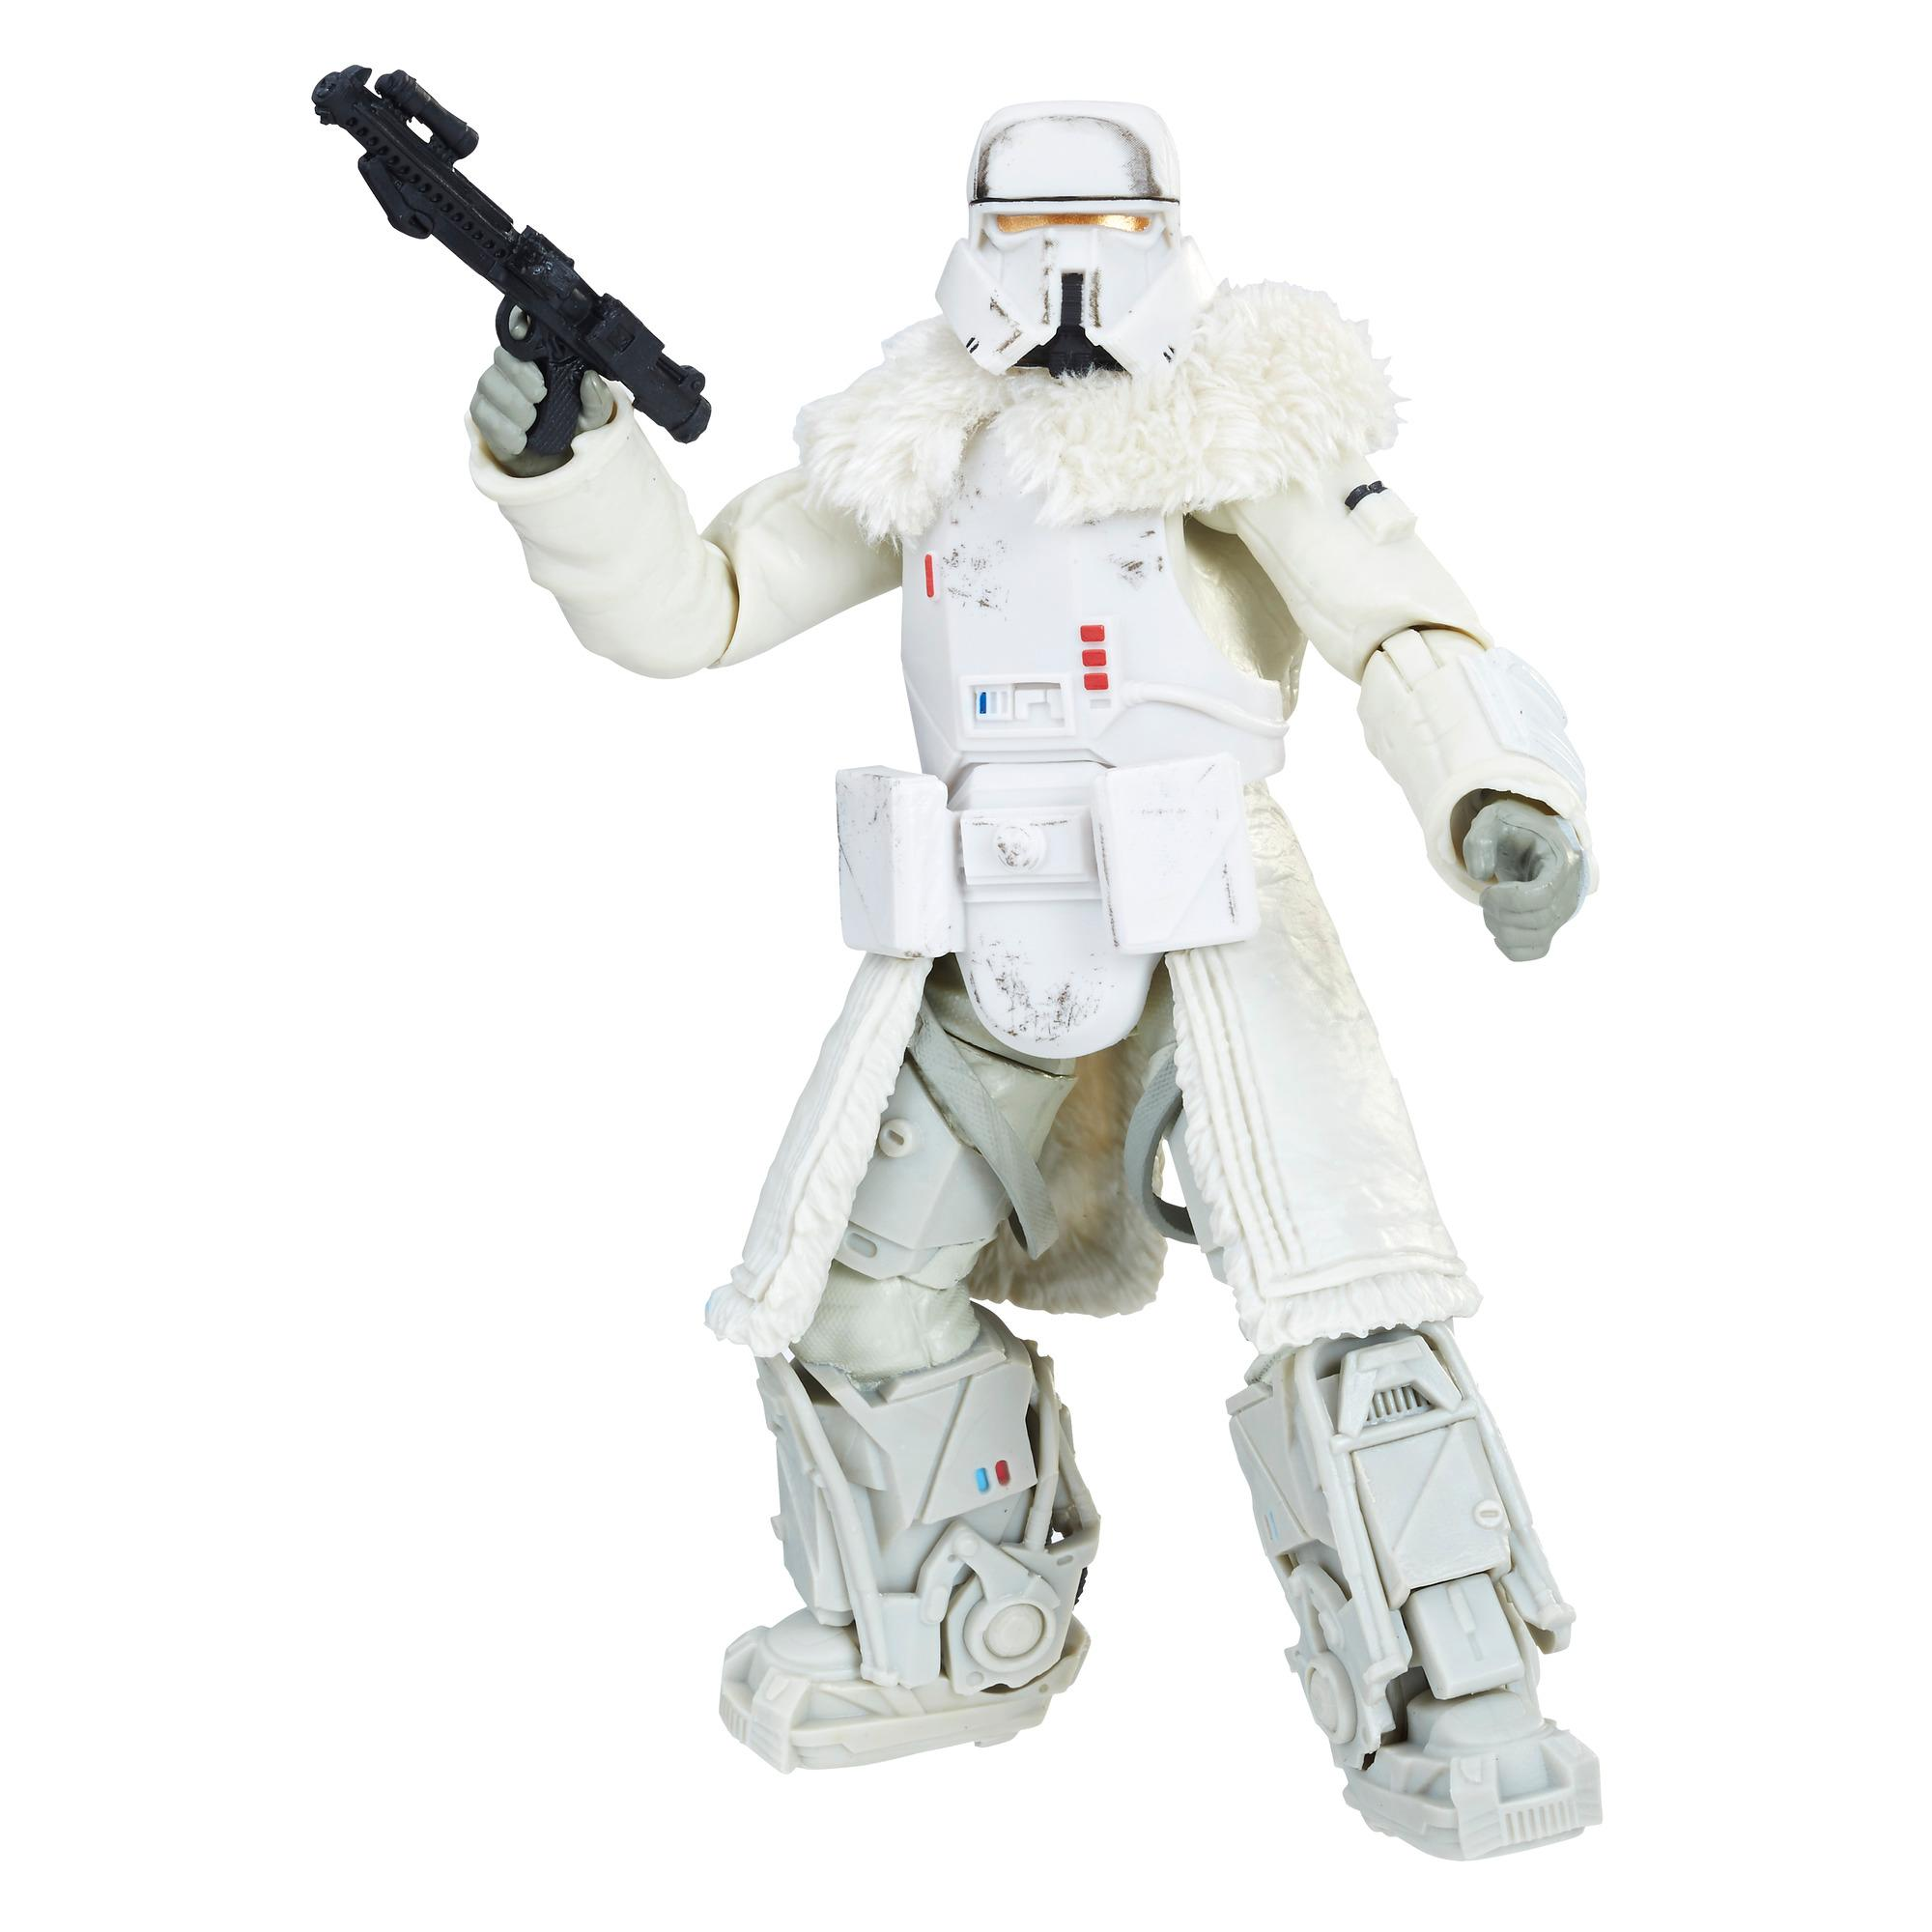 Star Wars The Black Series - Range Trooper de 15 cm